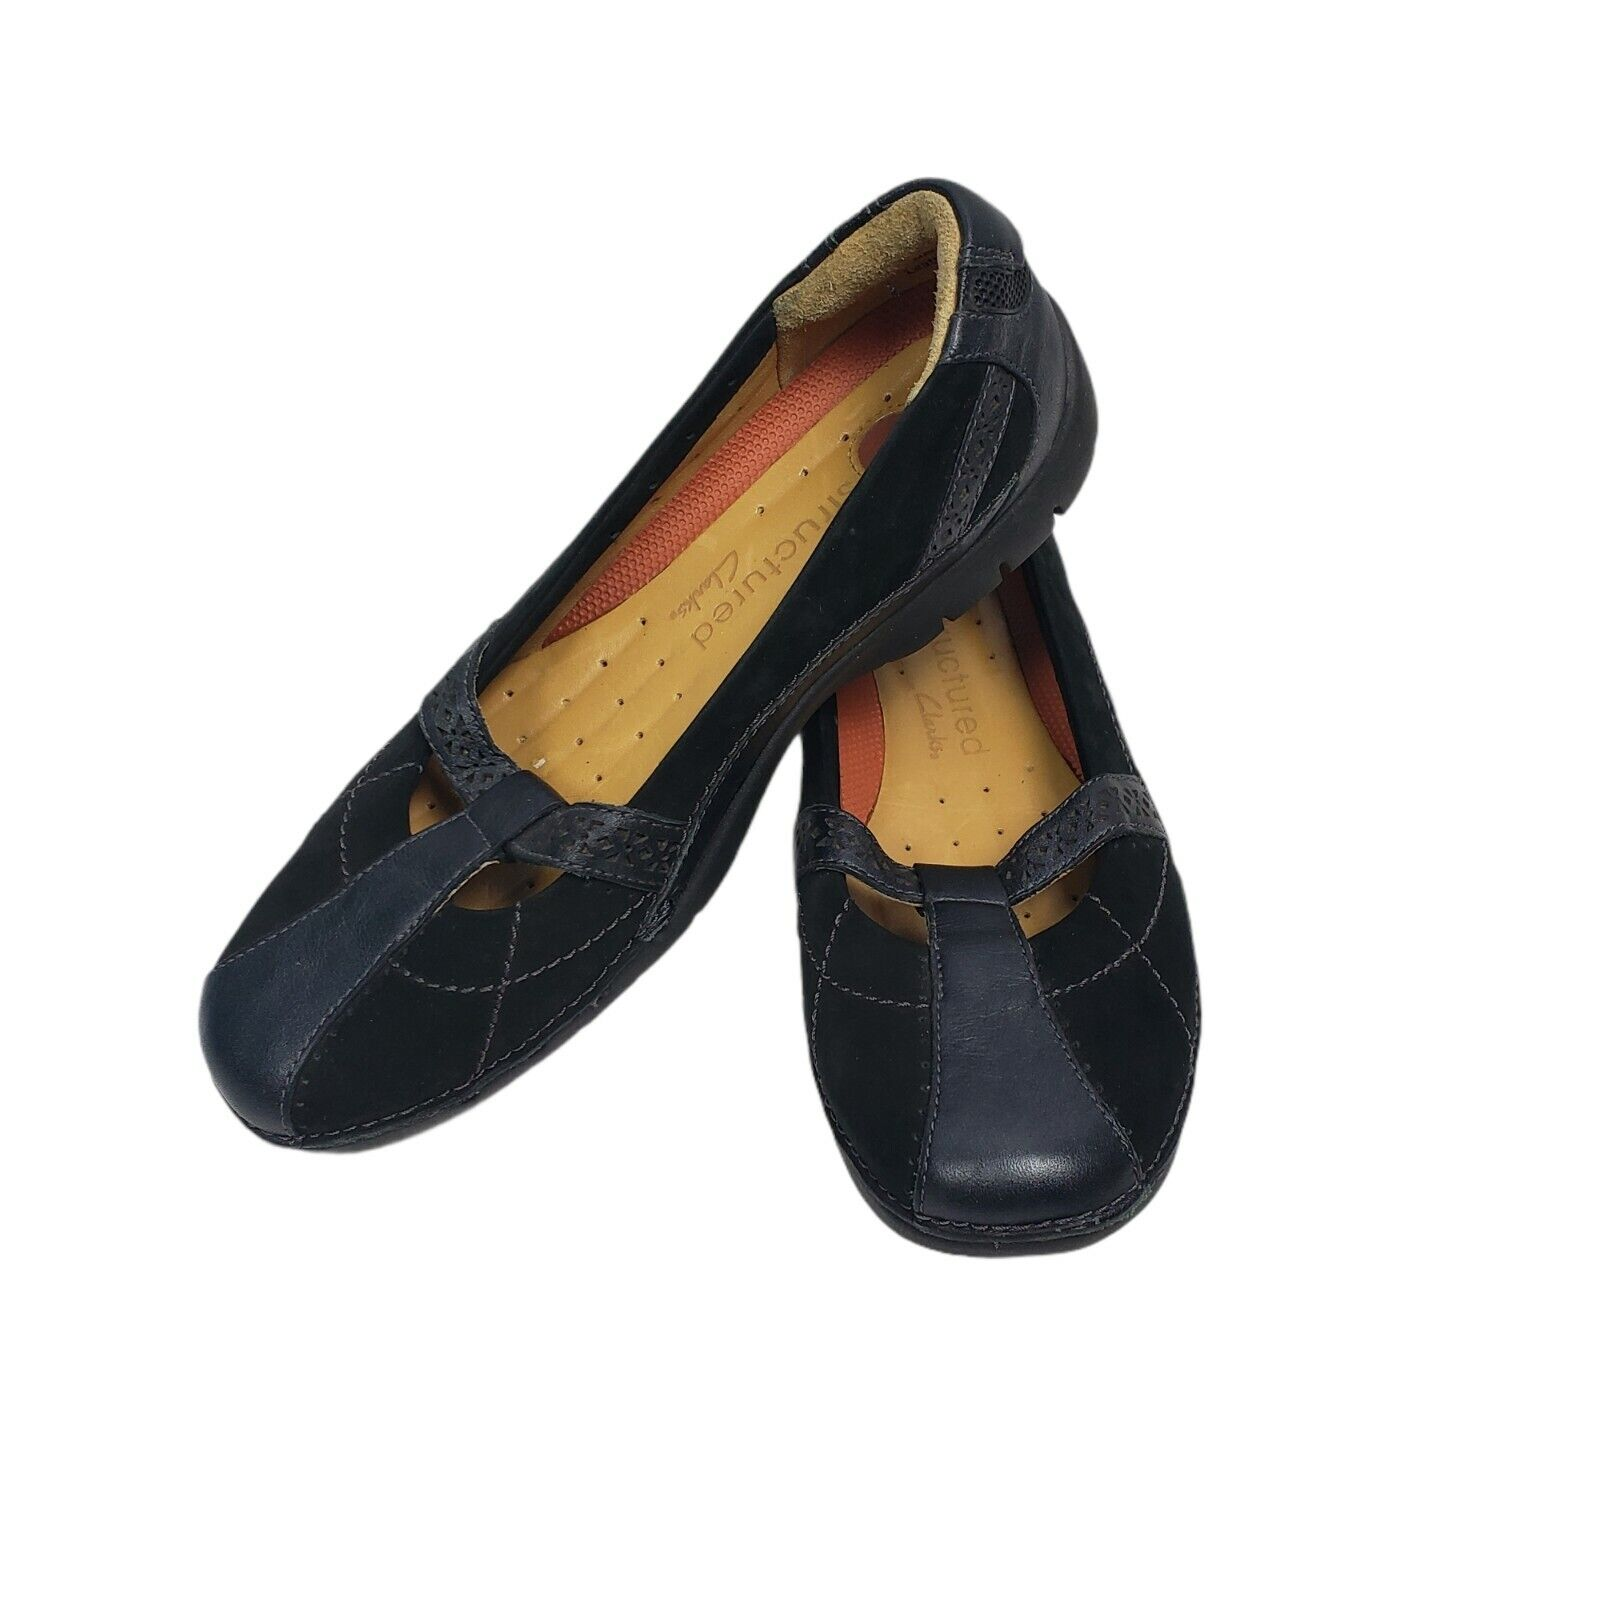 Clarks Unstructured Slip On Loafers Womens Size 5.5 M Black Leather Shoes